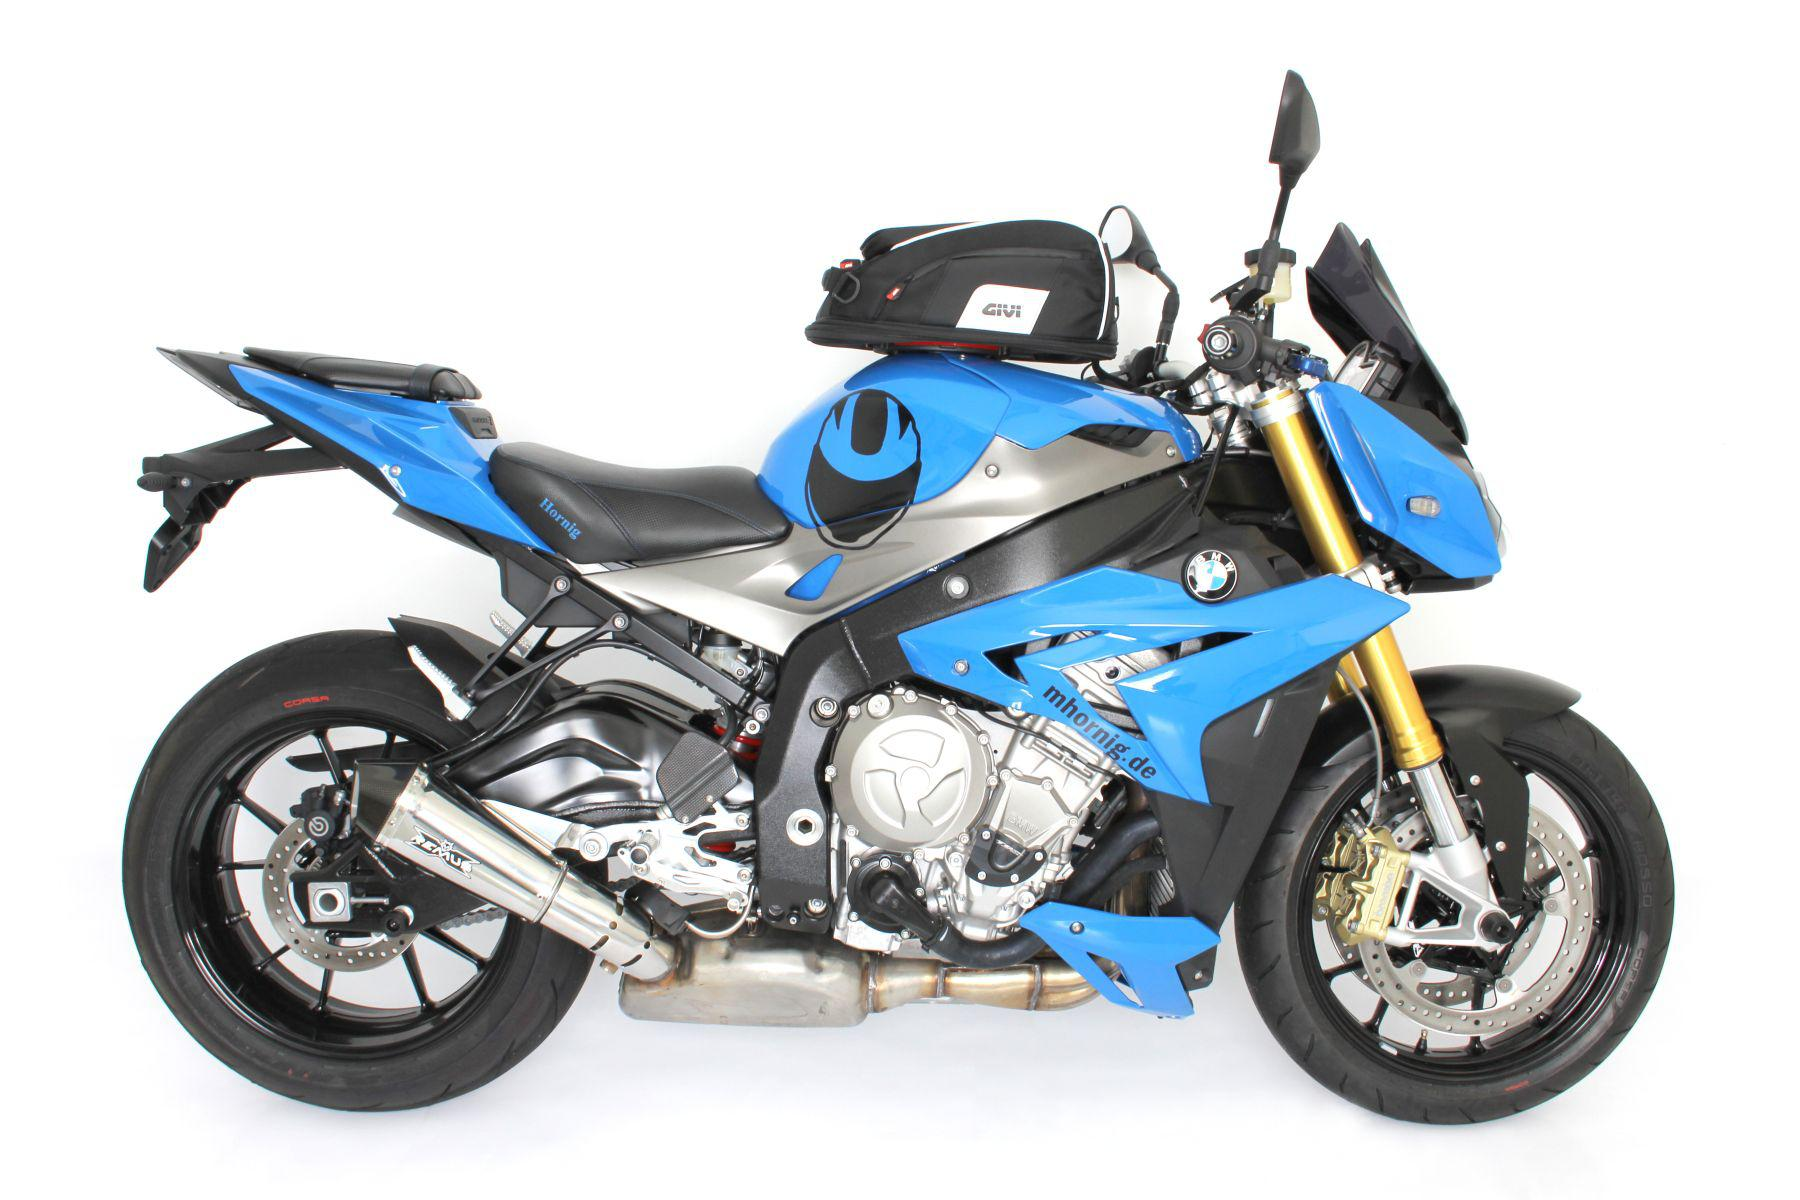 hornig tunt die bmw s 1000 r. Black Bedroom Furniture Sets. Home Design Ideas